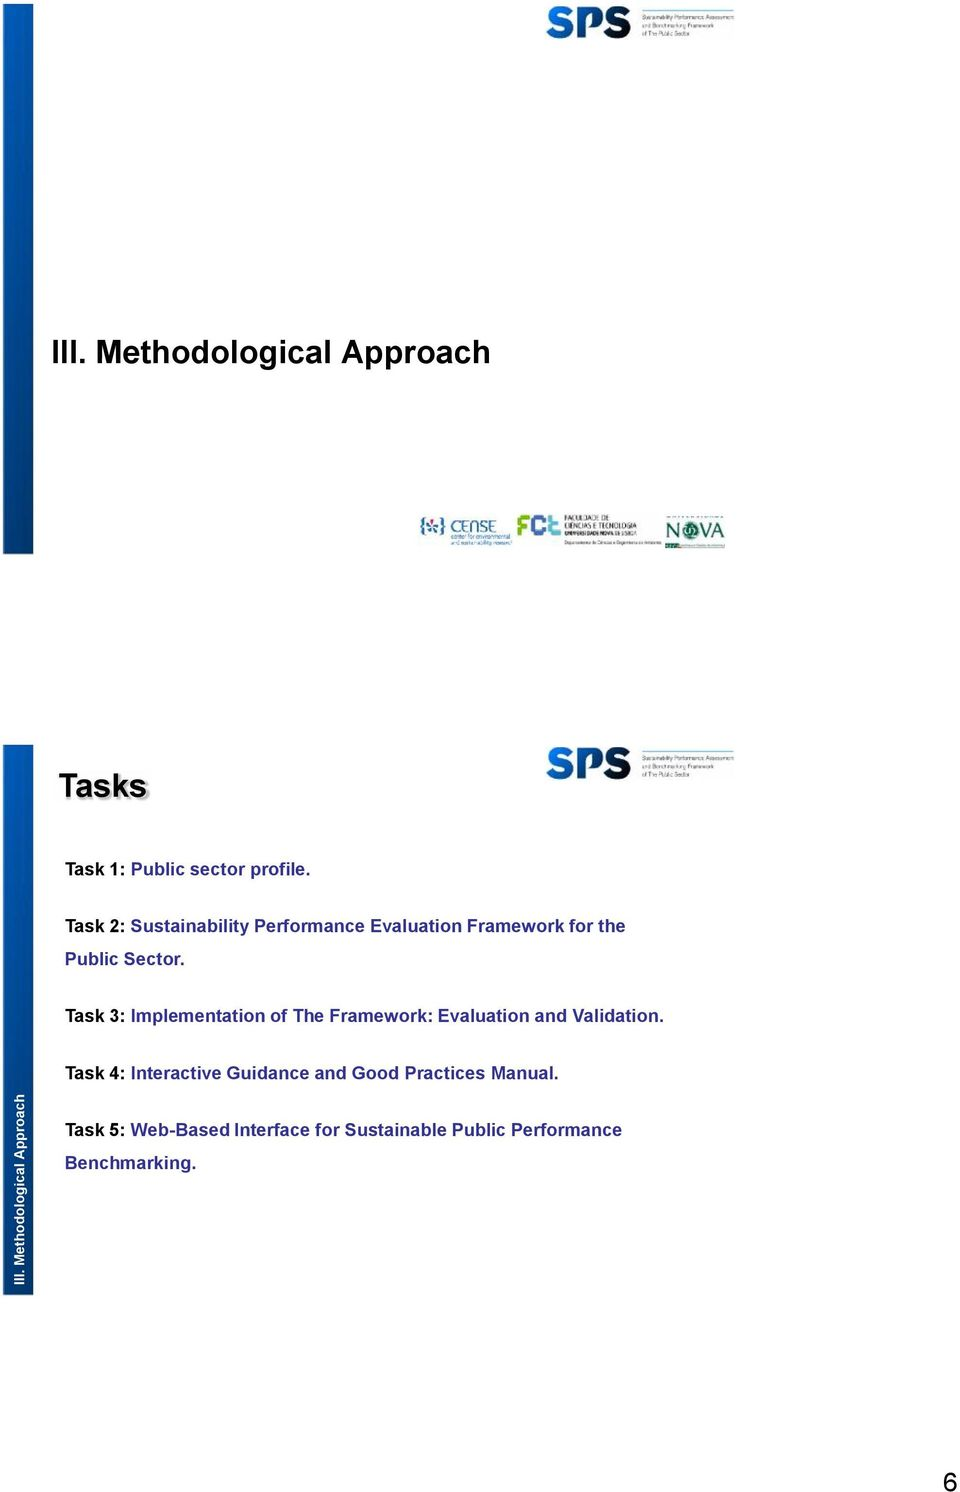 Task 3: Implementation of The Framework: Evaluation and Validation.